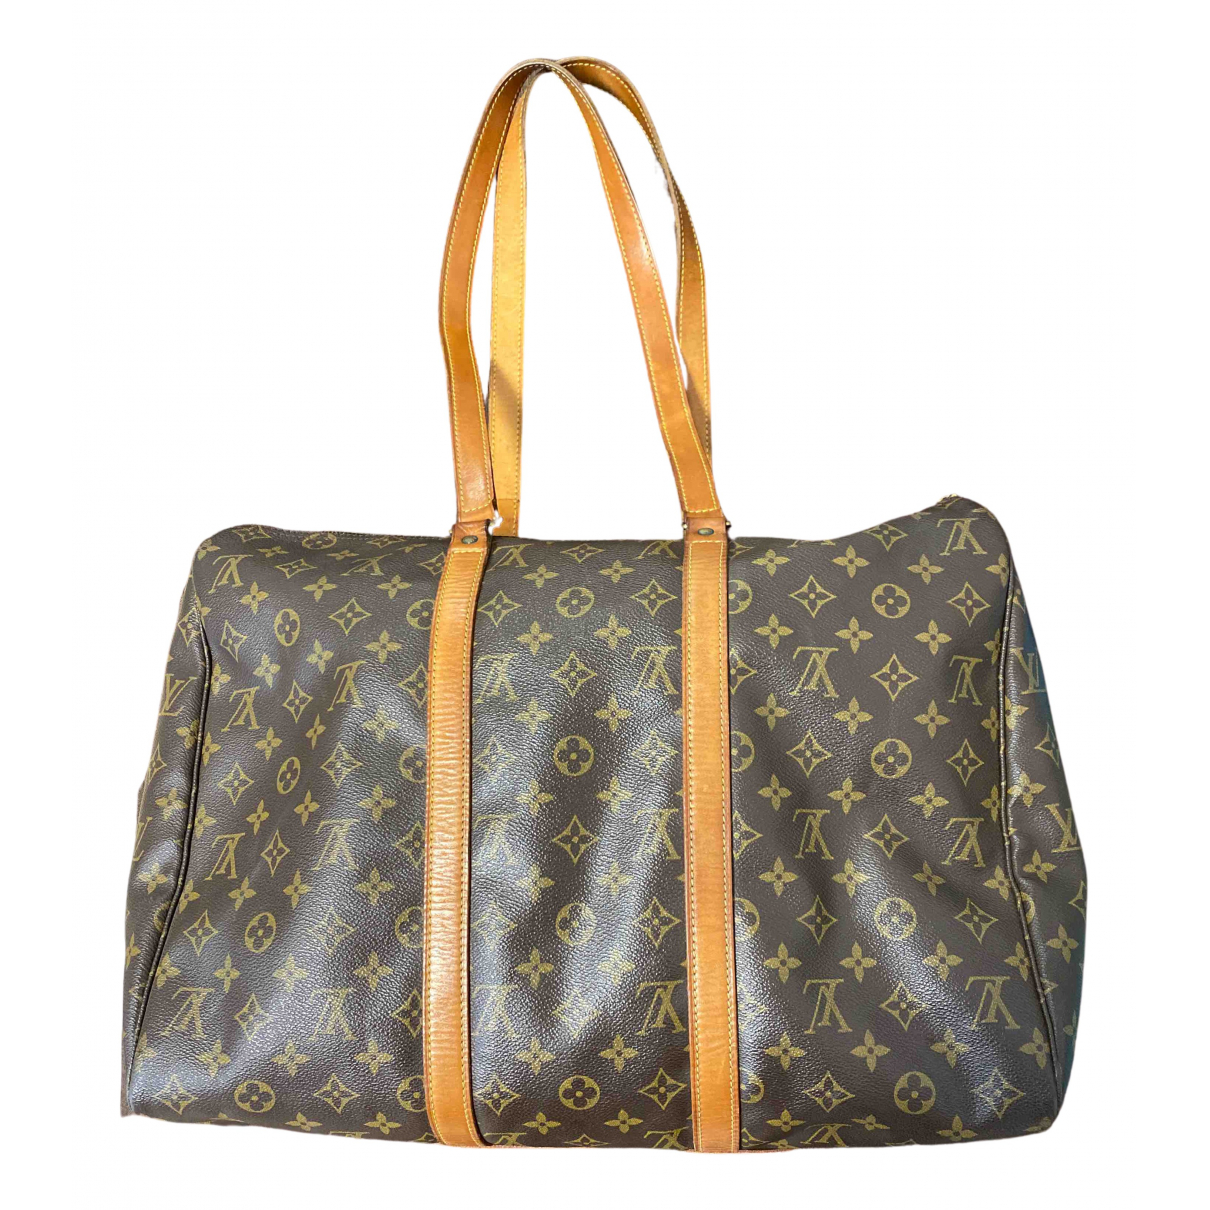 Louis Vuitton Sac souple  Brown Cloth handbag for Women N